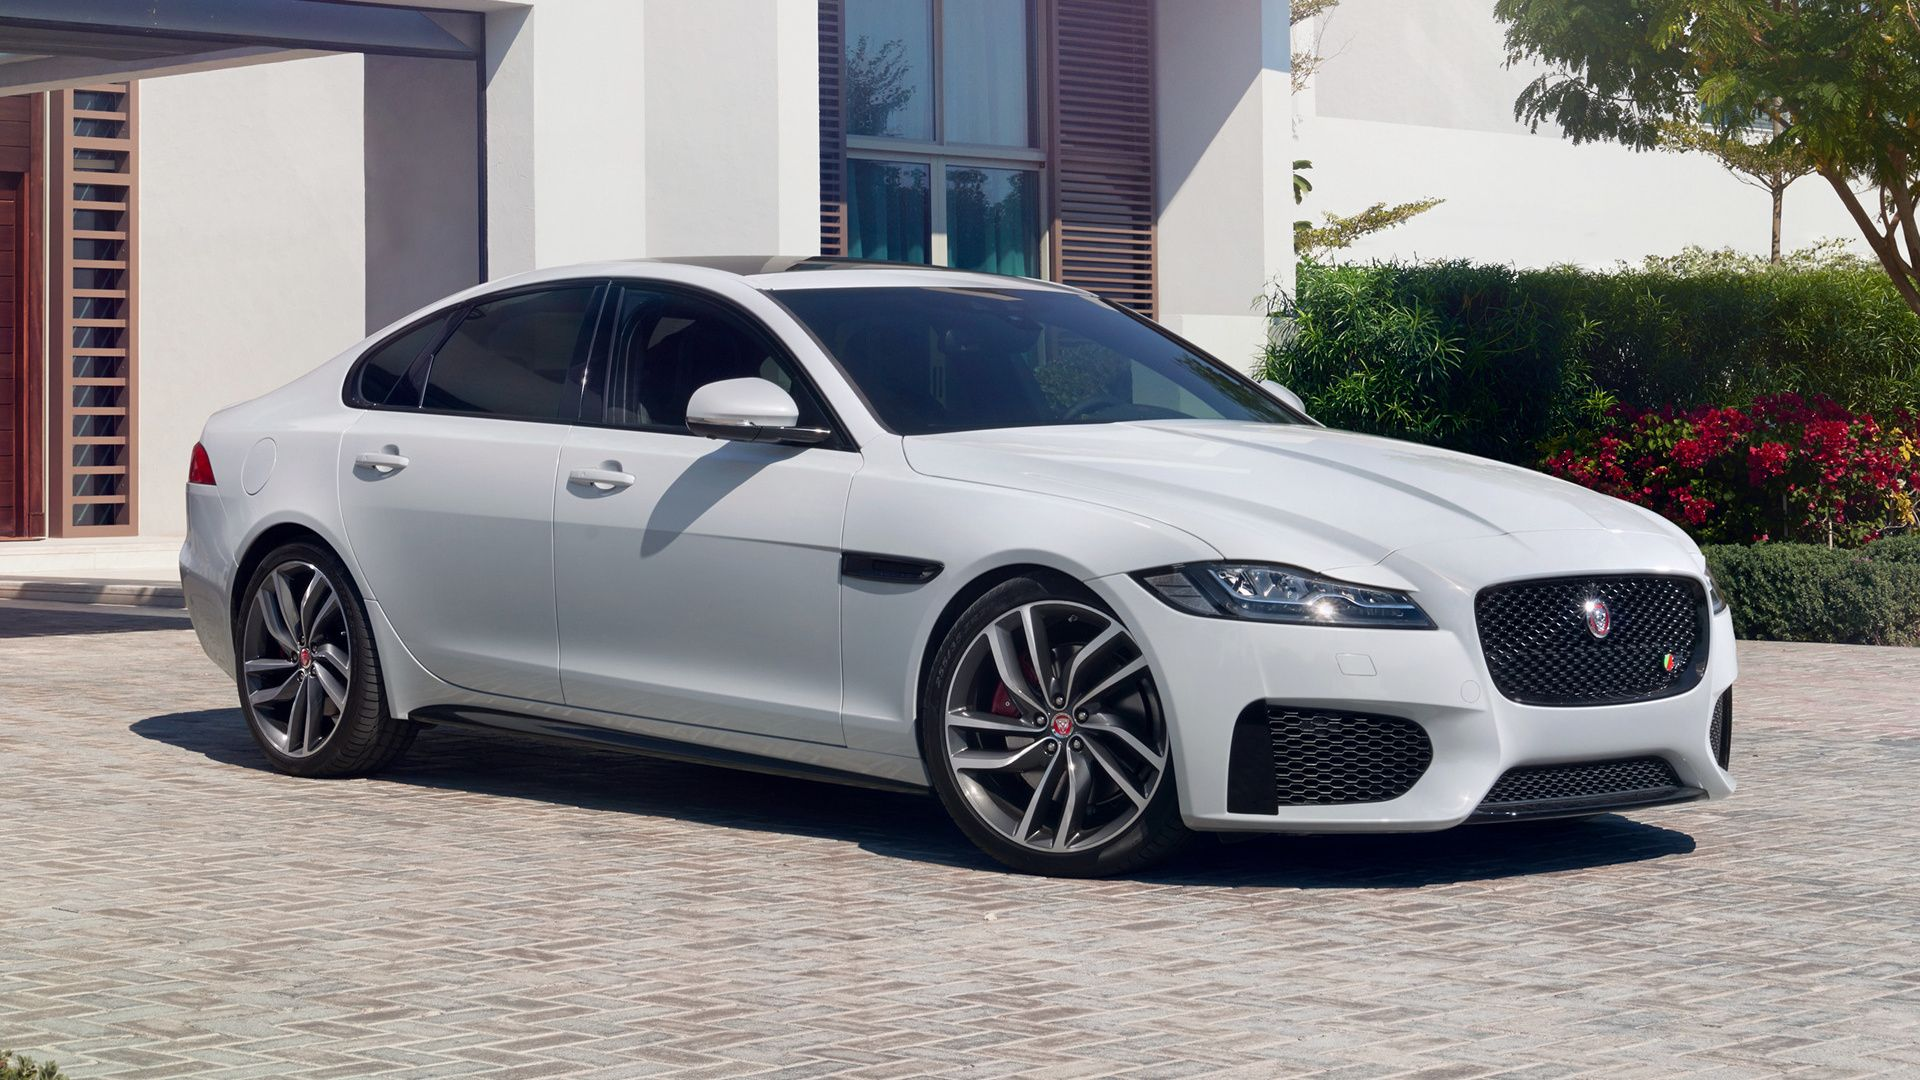 price the review front jaguar brit xf car artistry